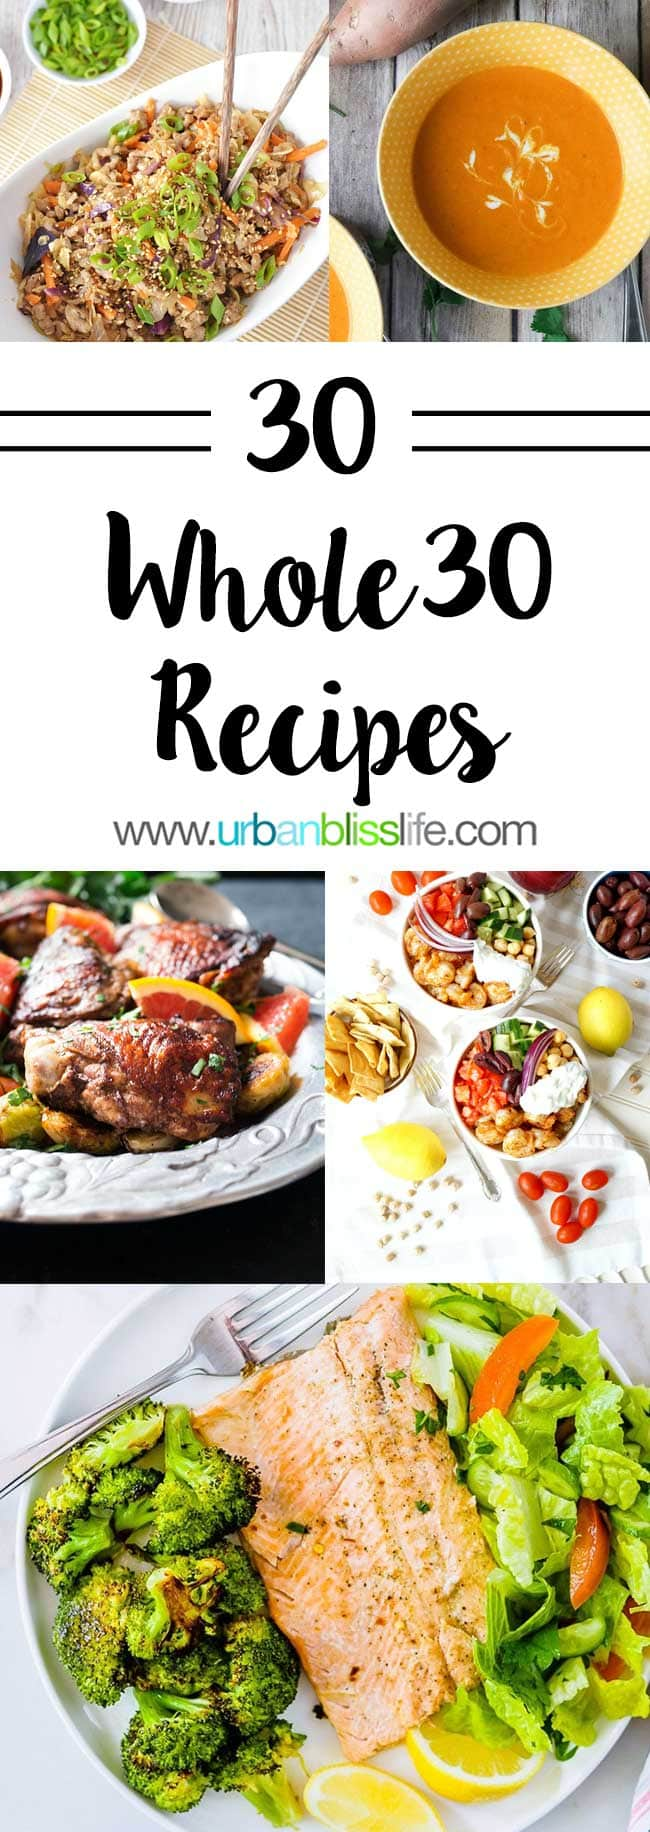 30 Whole30 Recipes for breakfast, lunch, dinner, and more